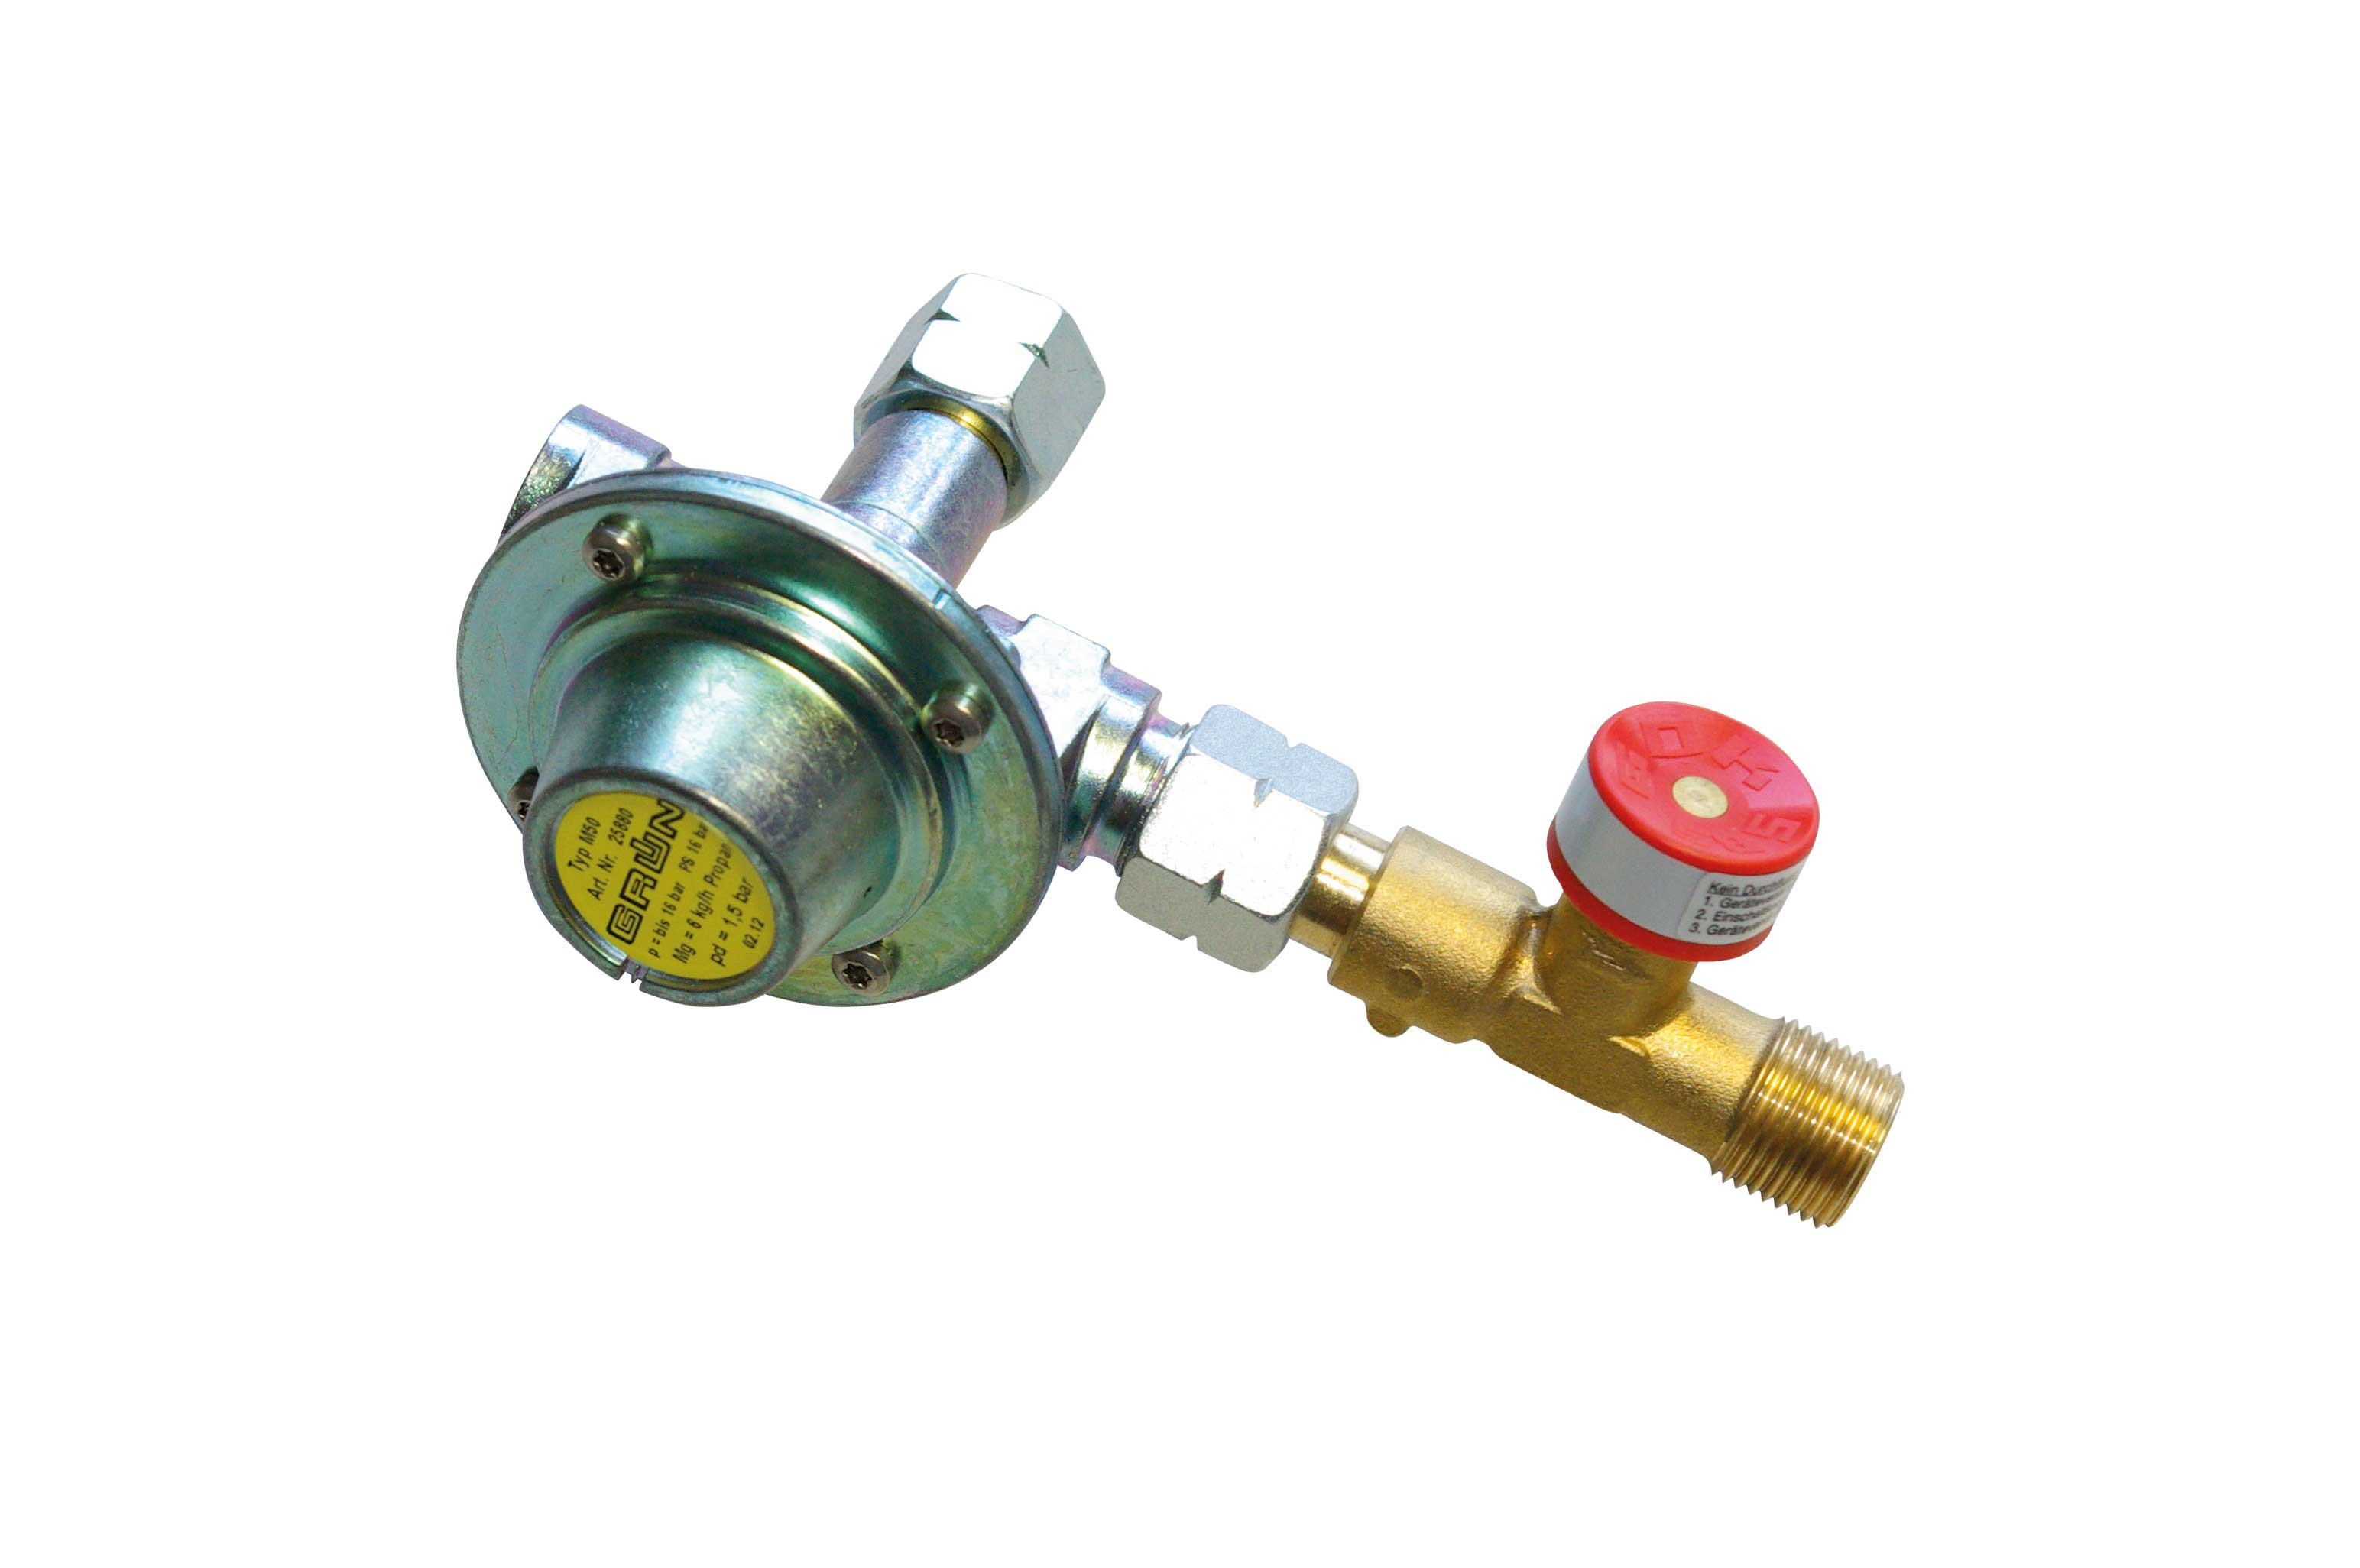 Mitteldruckregler 1,5 bar / Medium pressure regulator 1,5 bar